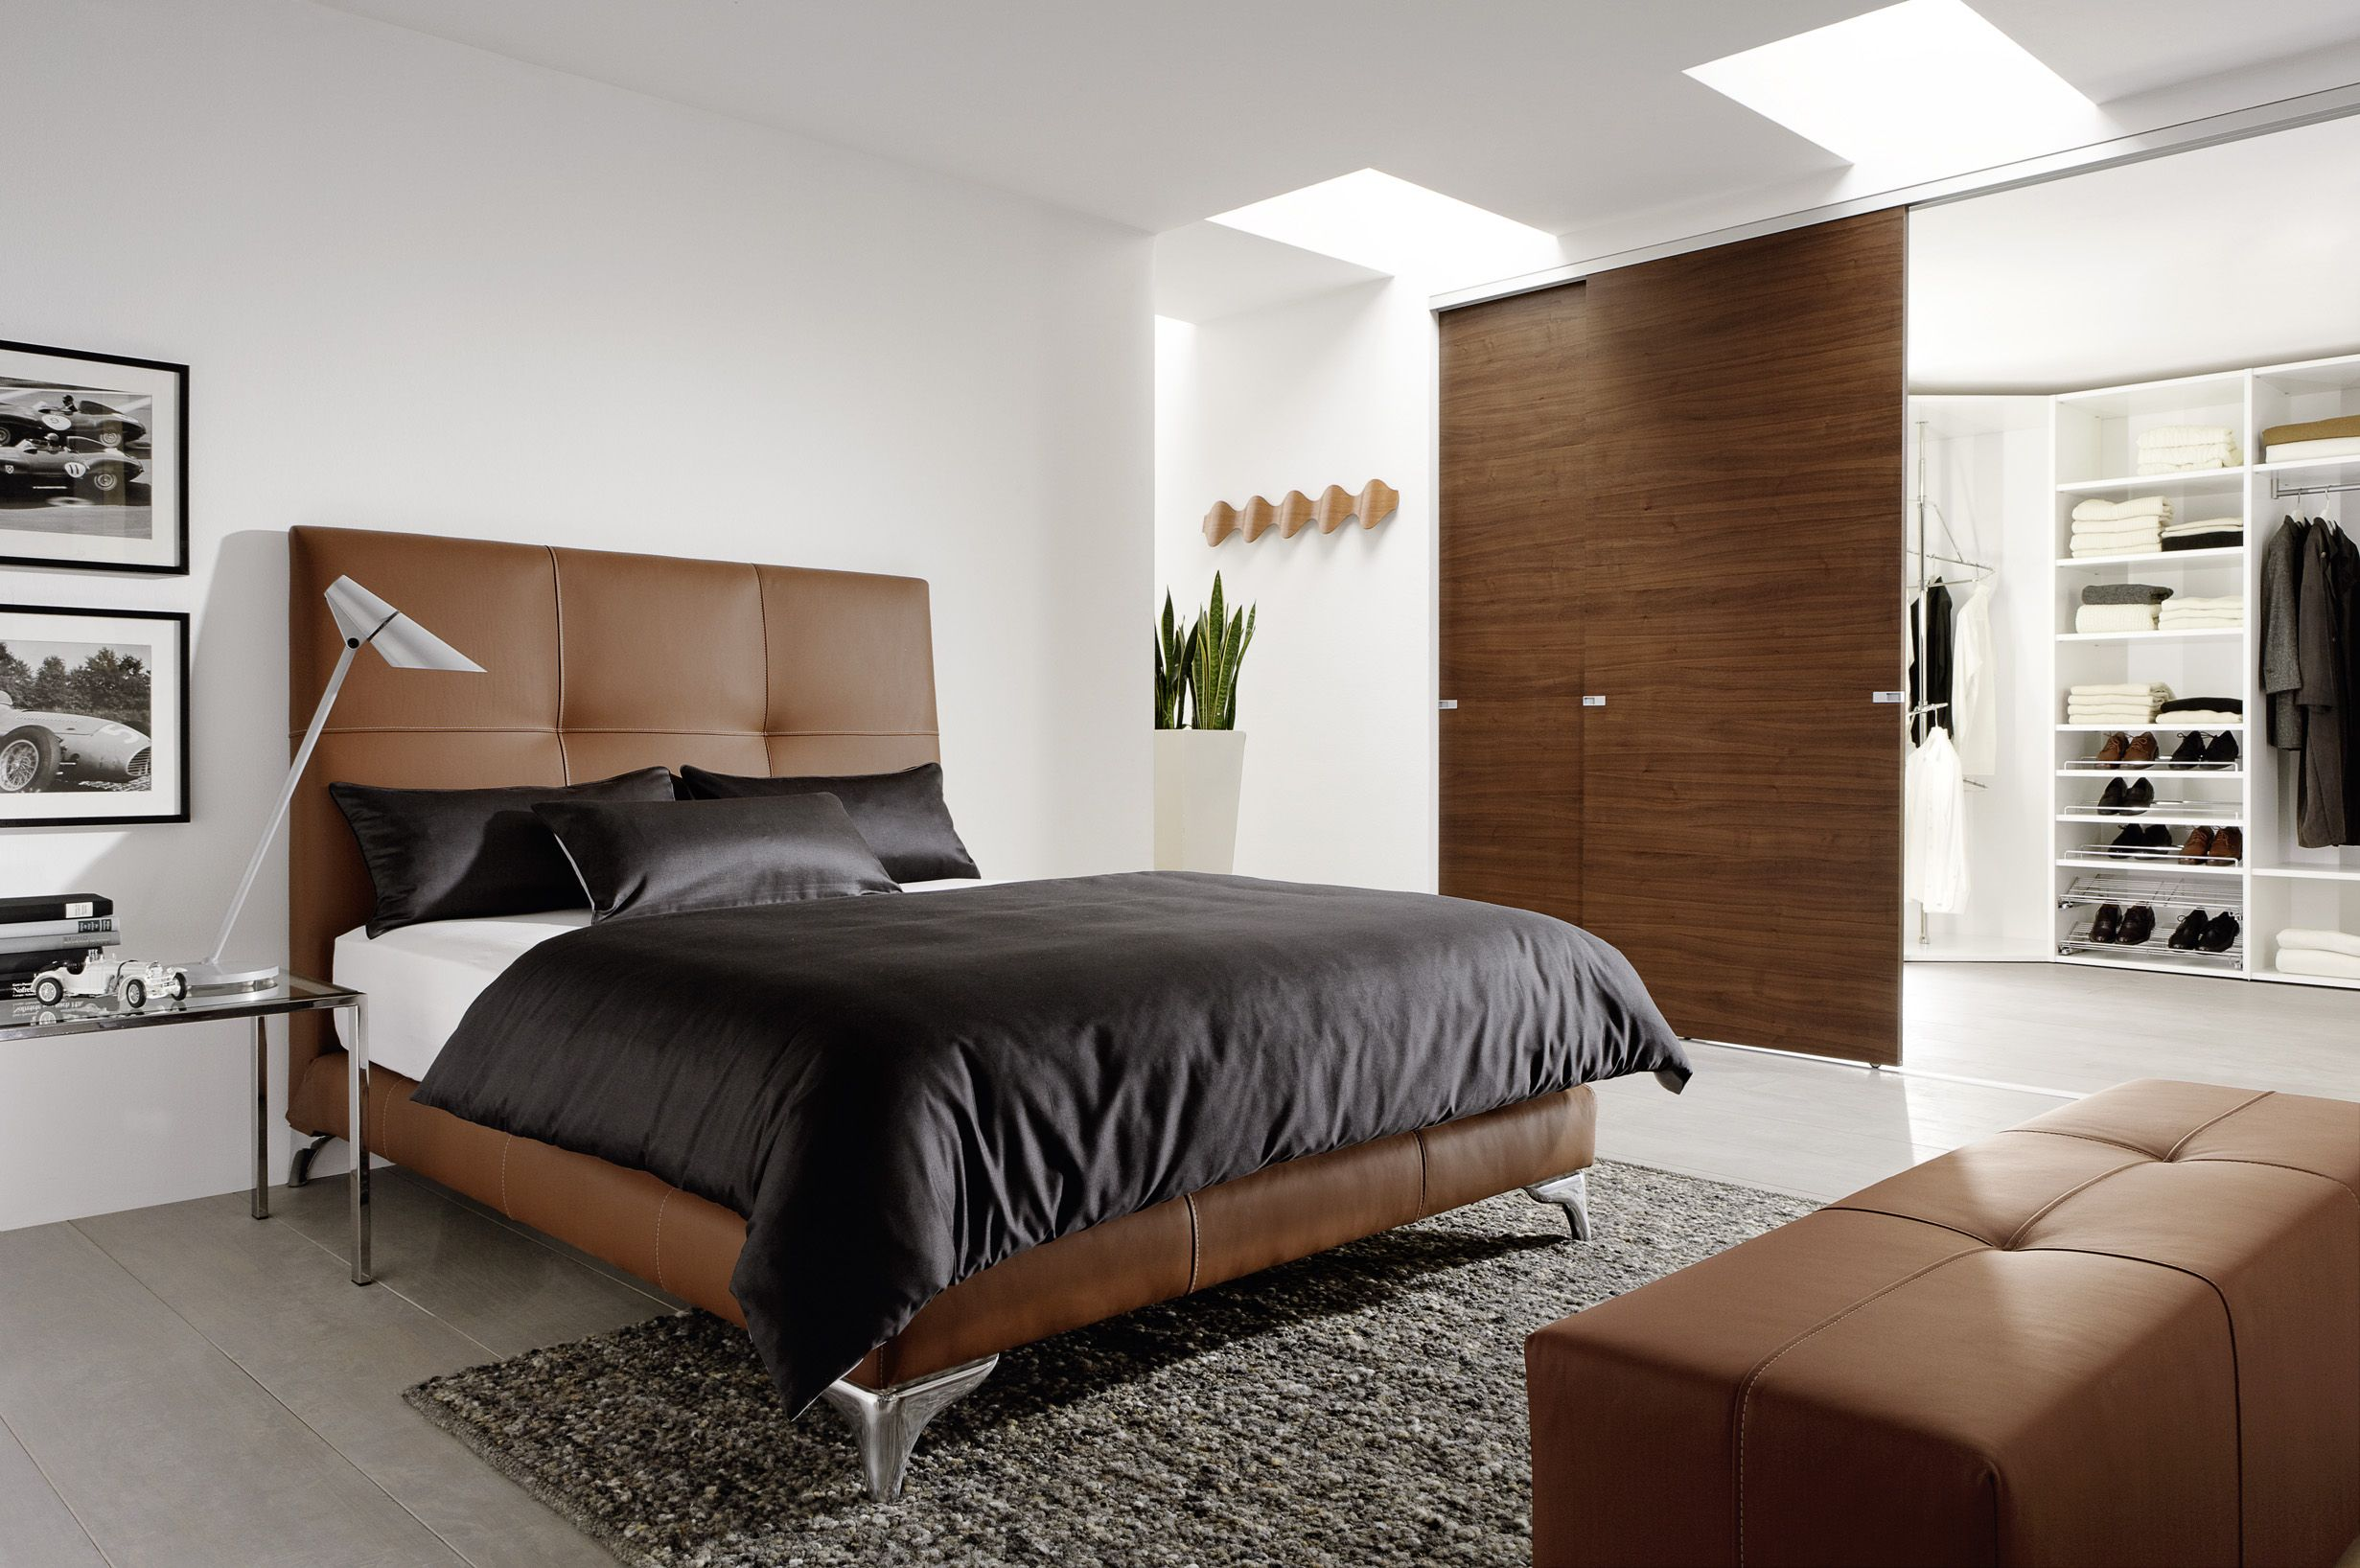 betten desiree coco und como von wk. Black Bedroom Furniture Sets. Home Design Ideas